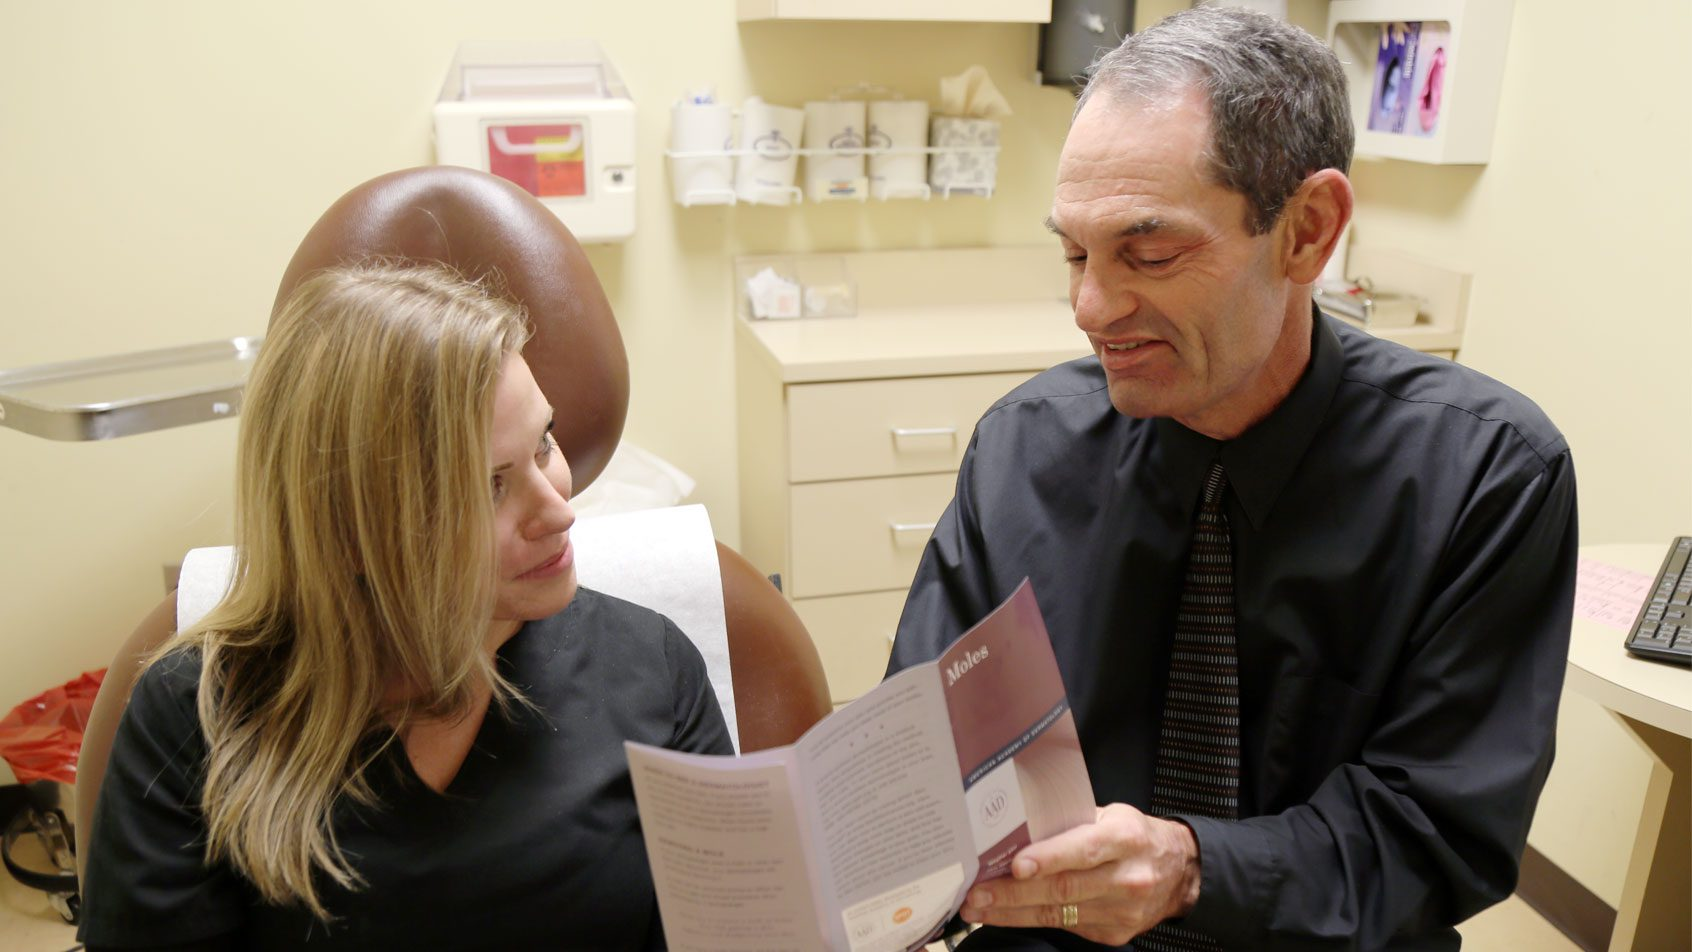 Board certified dermatologist, Dr. Alan Parks, gives information to a patient